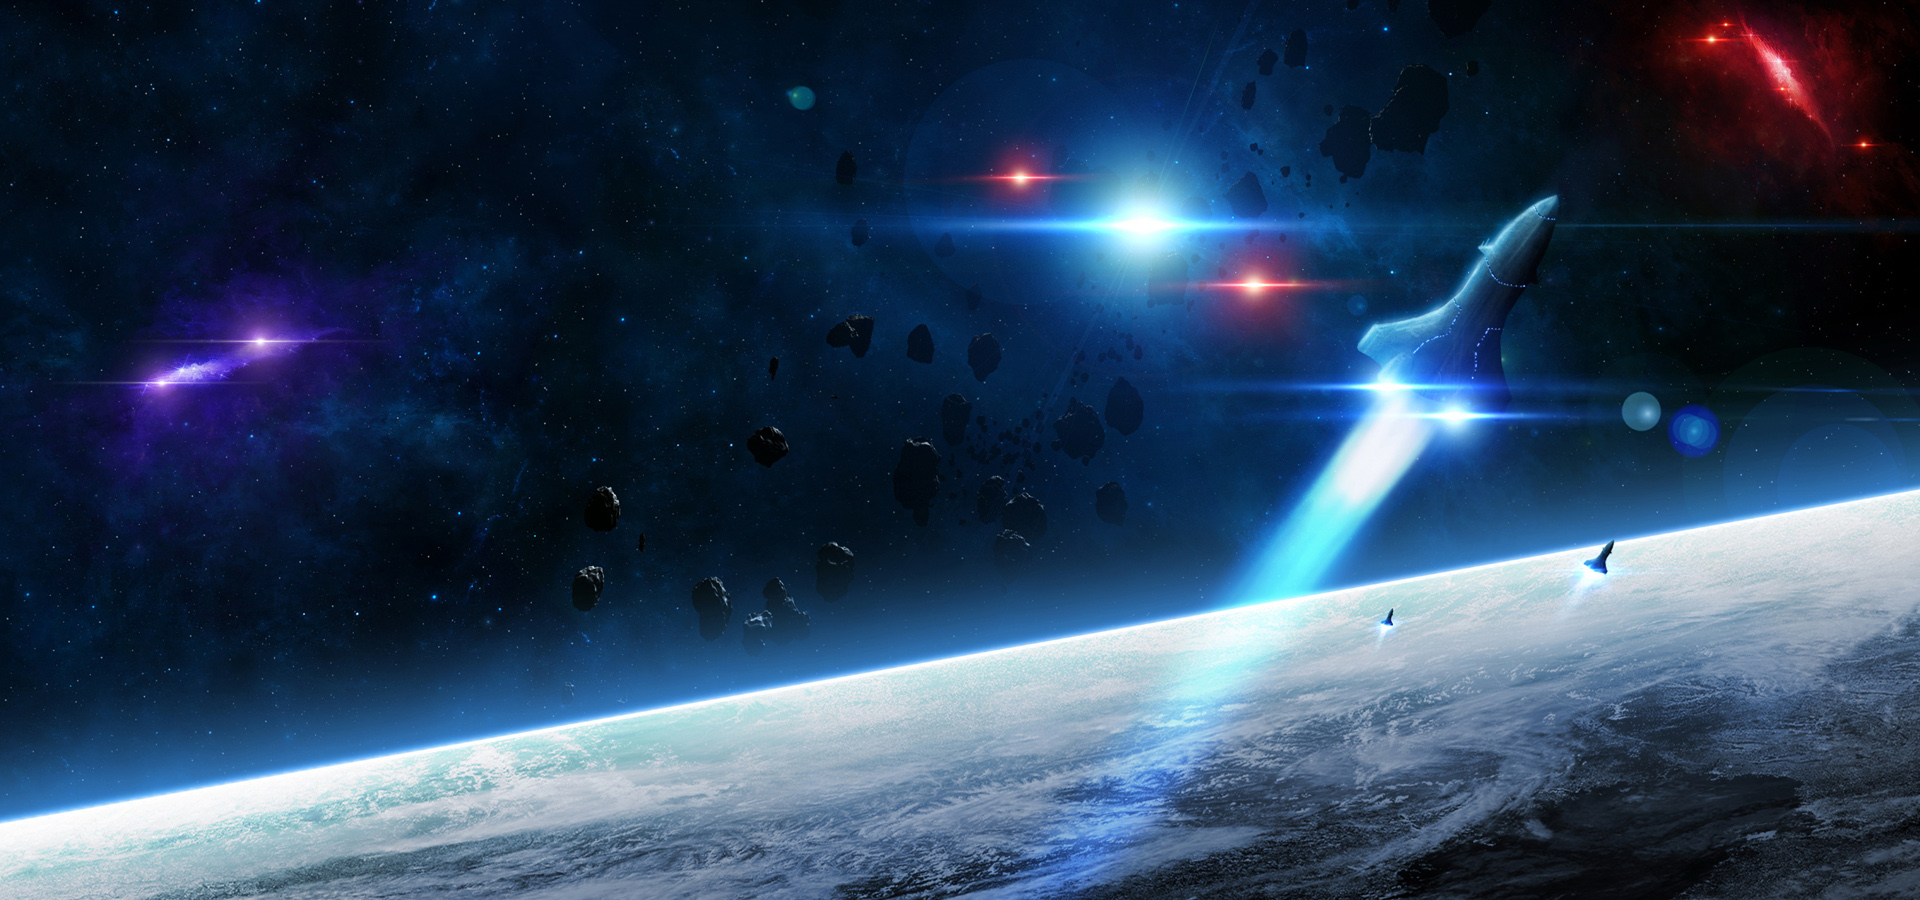 Star Wars, Star, Fleet, Universe Background Image for Free ...